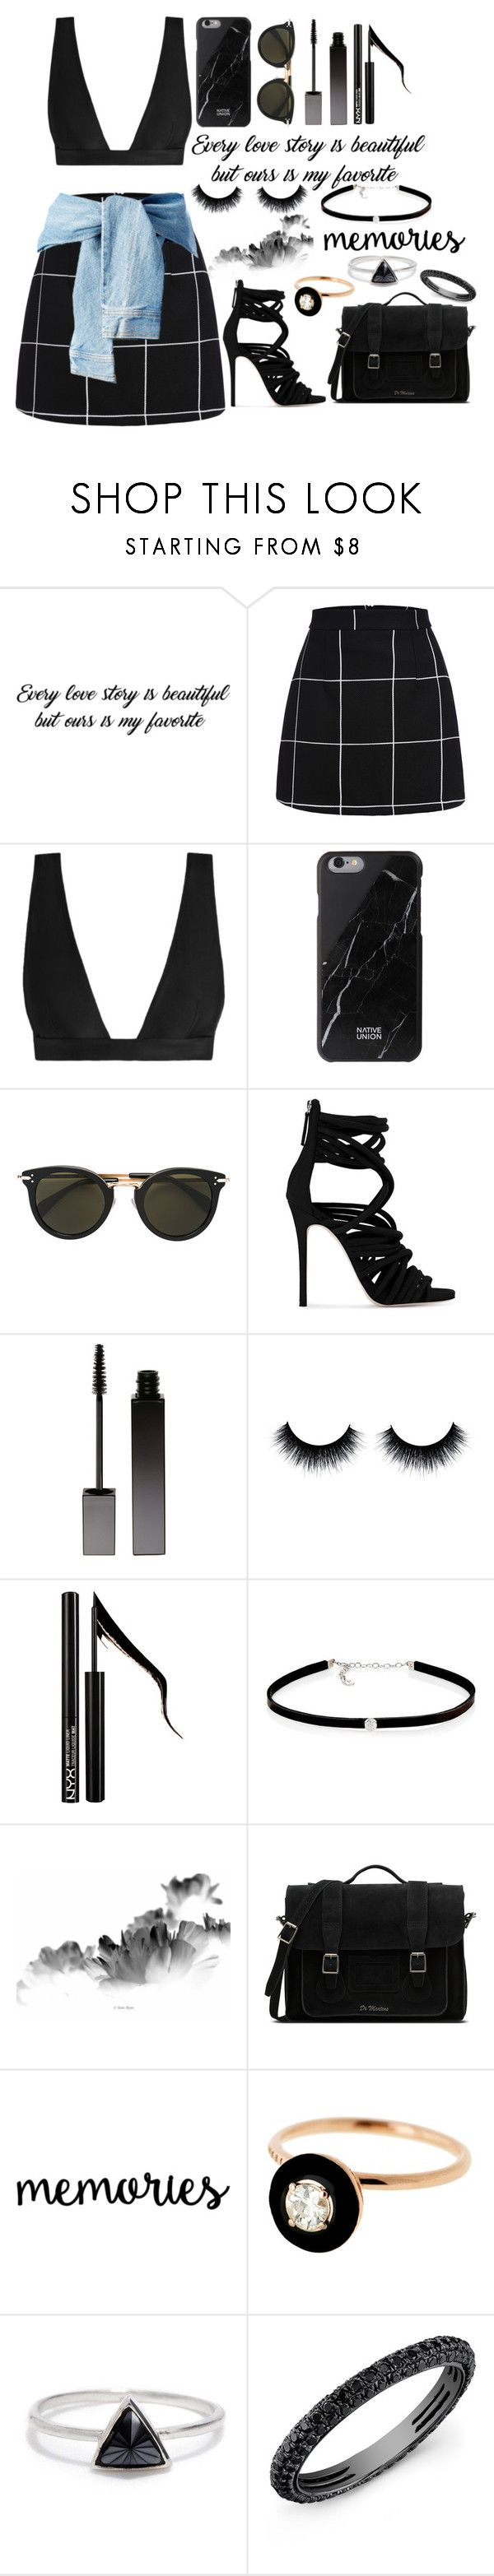 """""""Ours Is My Favorite"""" by selenaisunshine ❤ liked on Polyvore featuring Zimmermann, Native Union, CÉLINE, Giuseppe Zanotti, Serge Lutens, Forever 21, Carbon & Hyde, Dr. Martens, Selim Mouzannar and Bing Bang"""